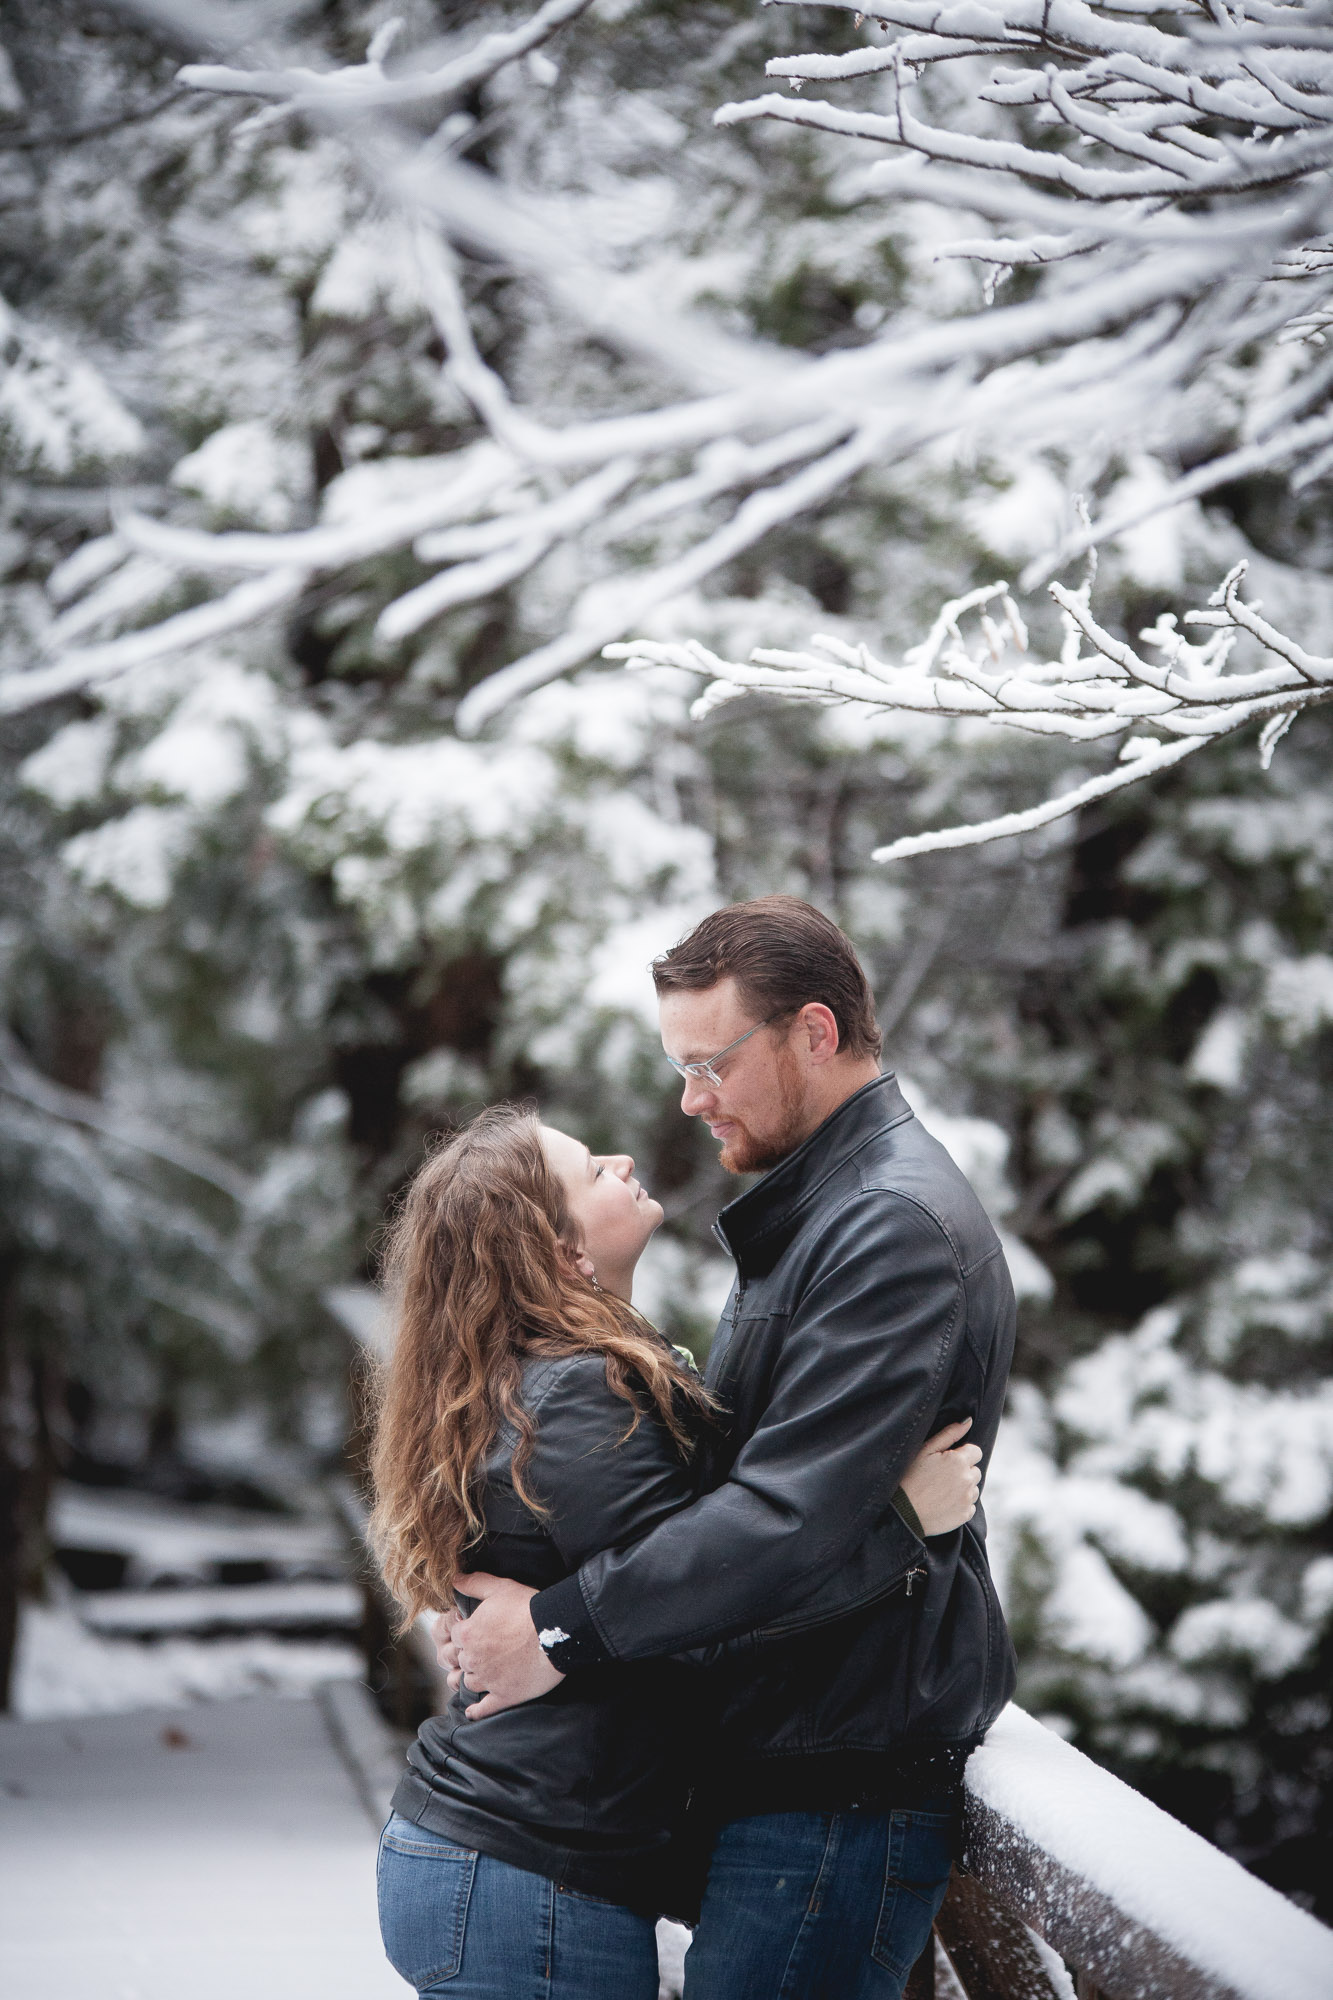 Meaford winter couple photography